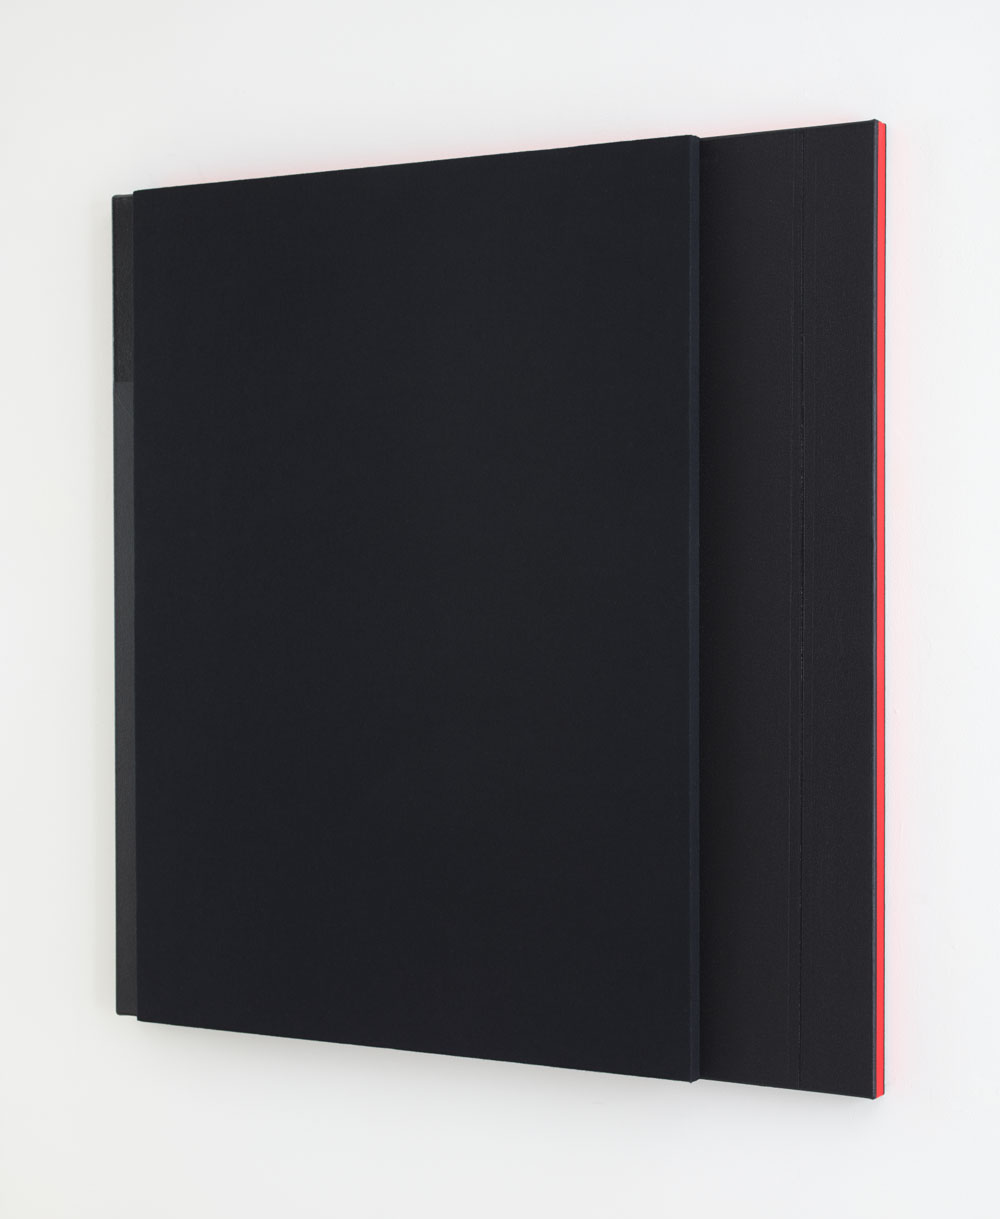 Deep Tone with Bold Double Bar Line, 2014 --Acoustic absorber panel and acrylic paint on canvas 48 x 48 inches